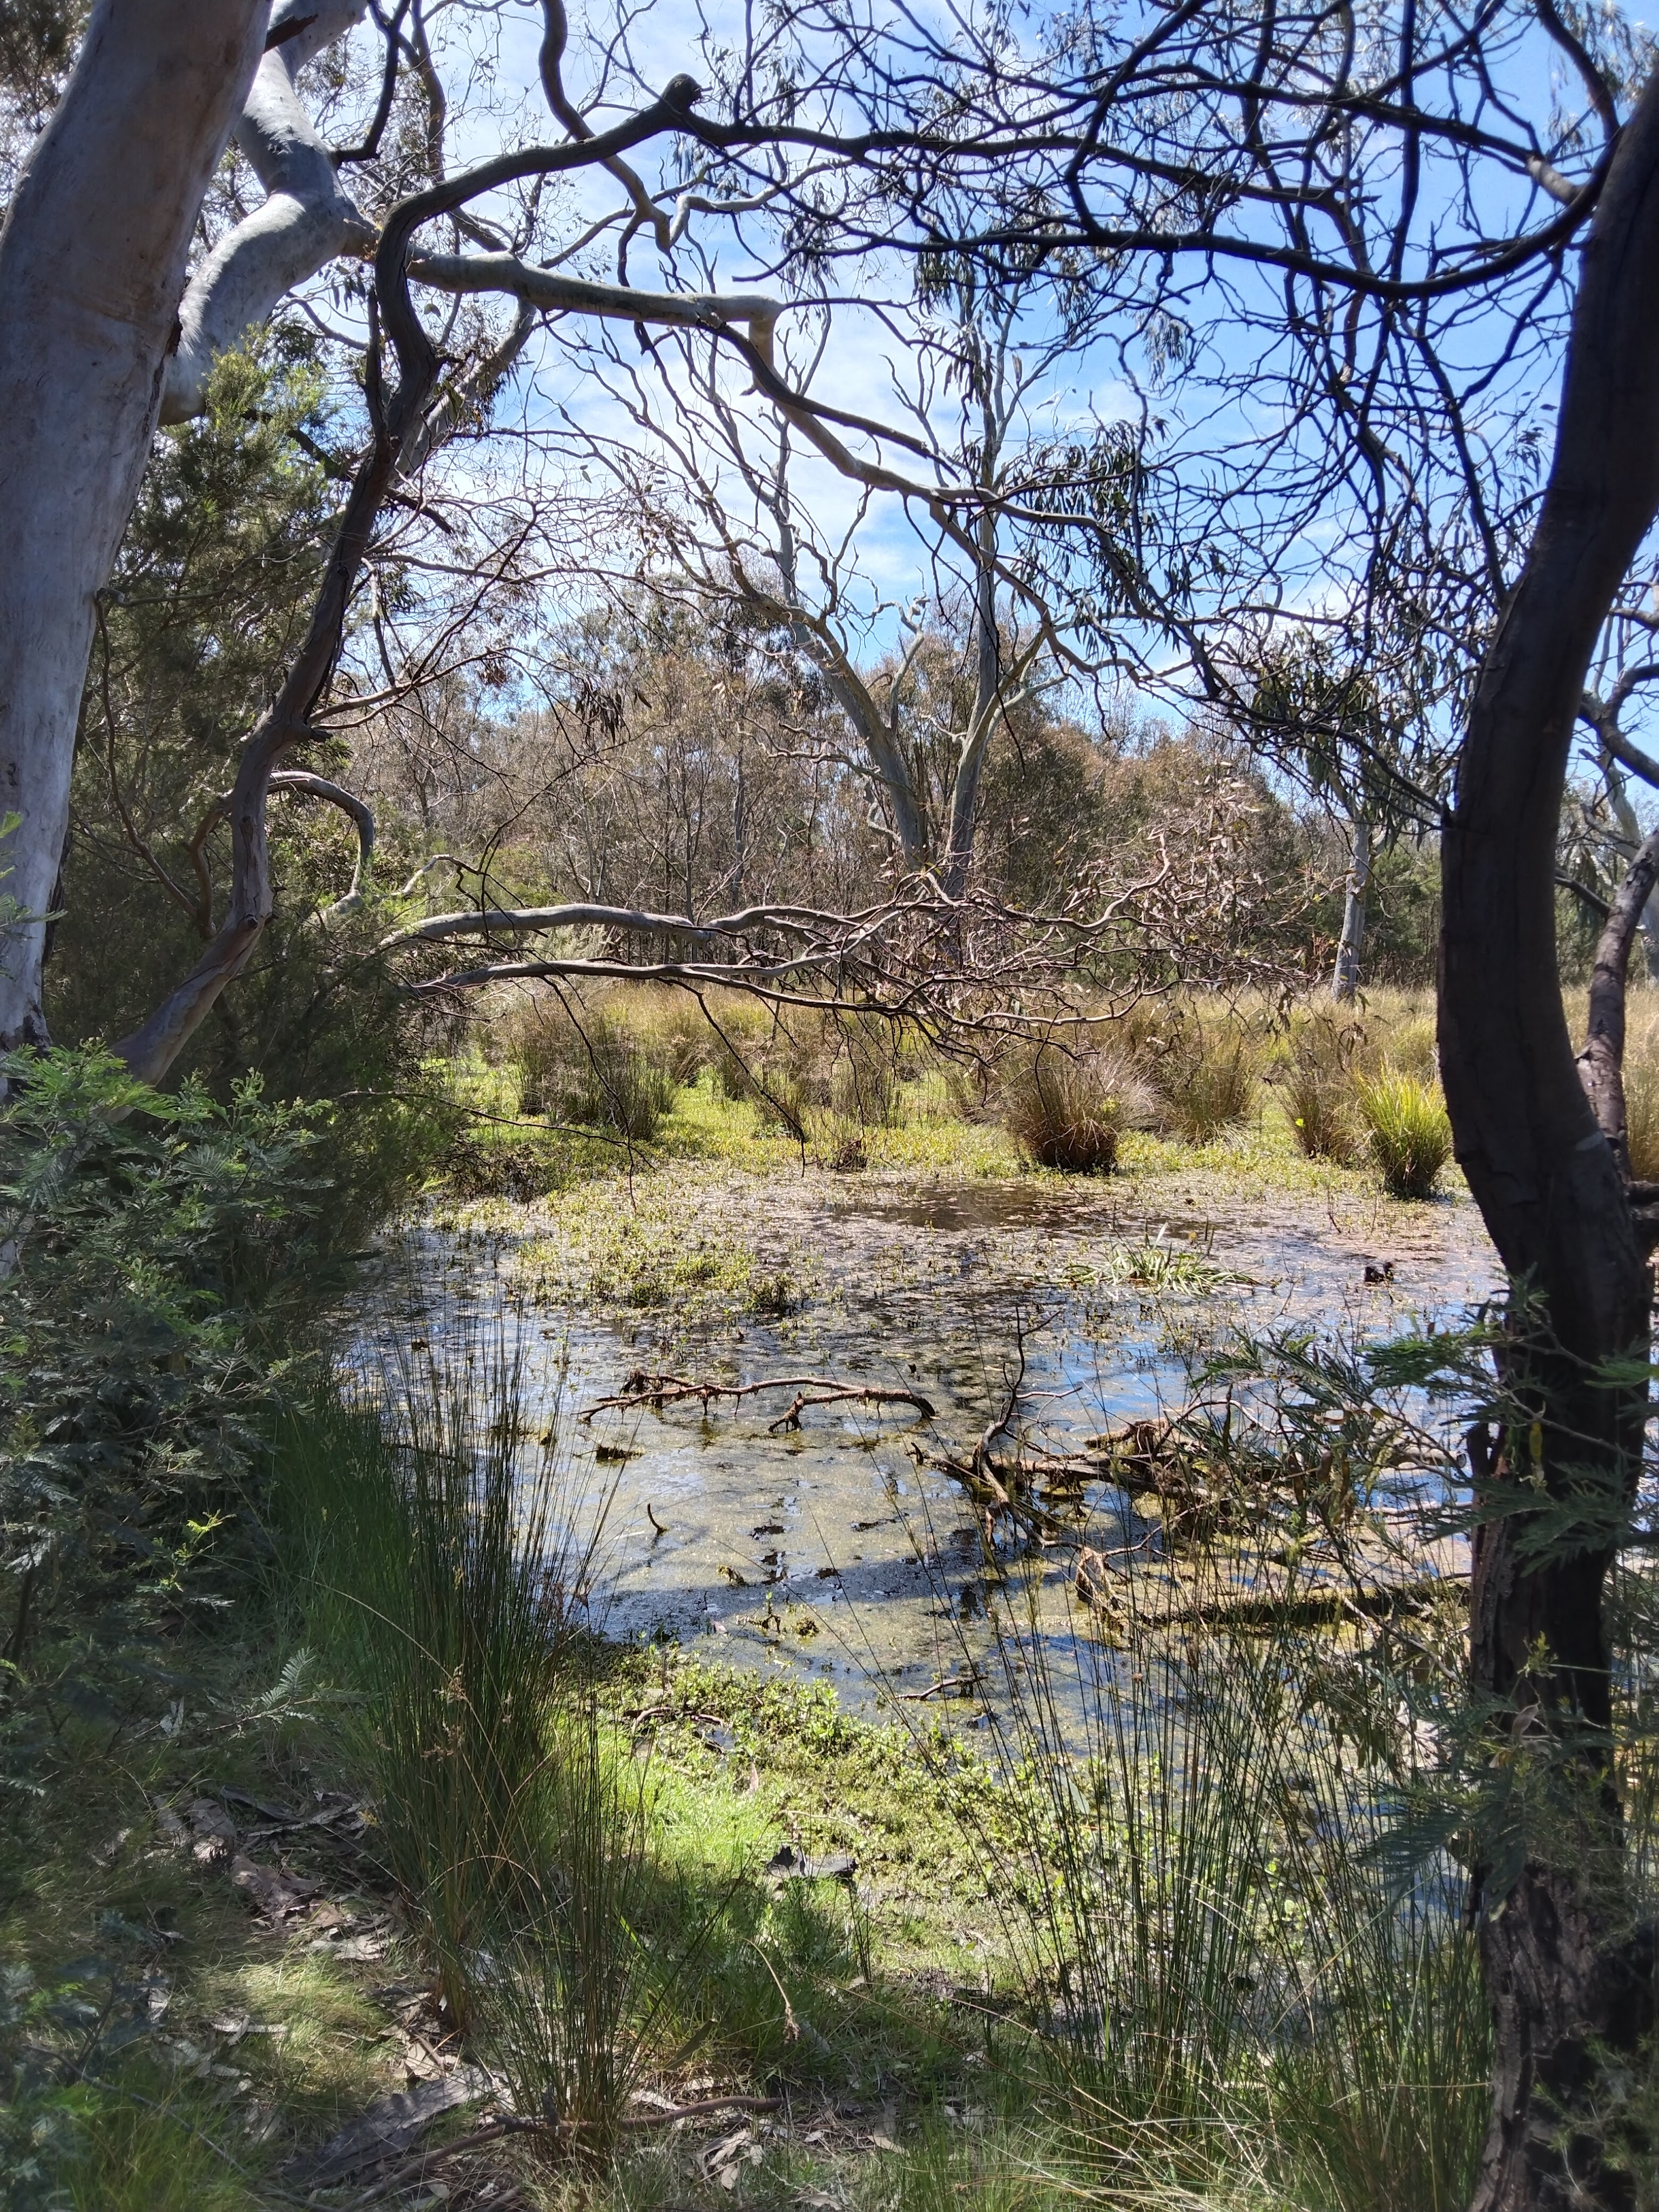 Swamp with trees and reeds